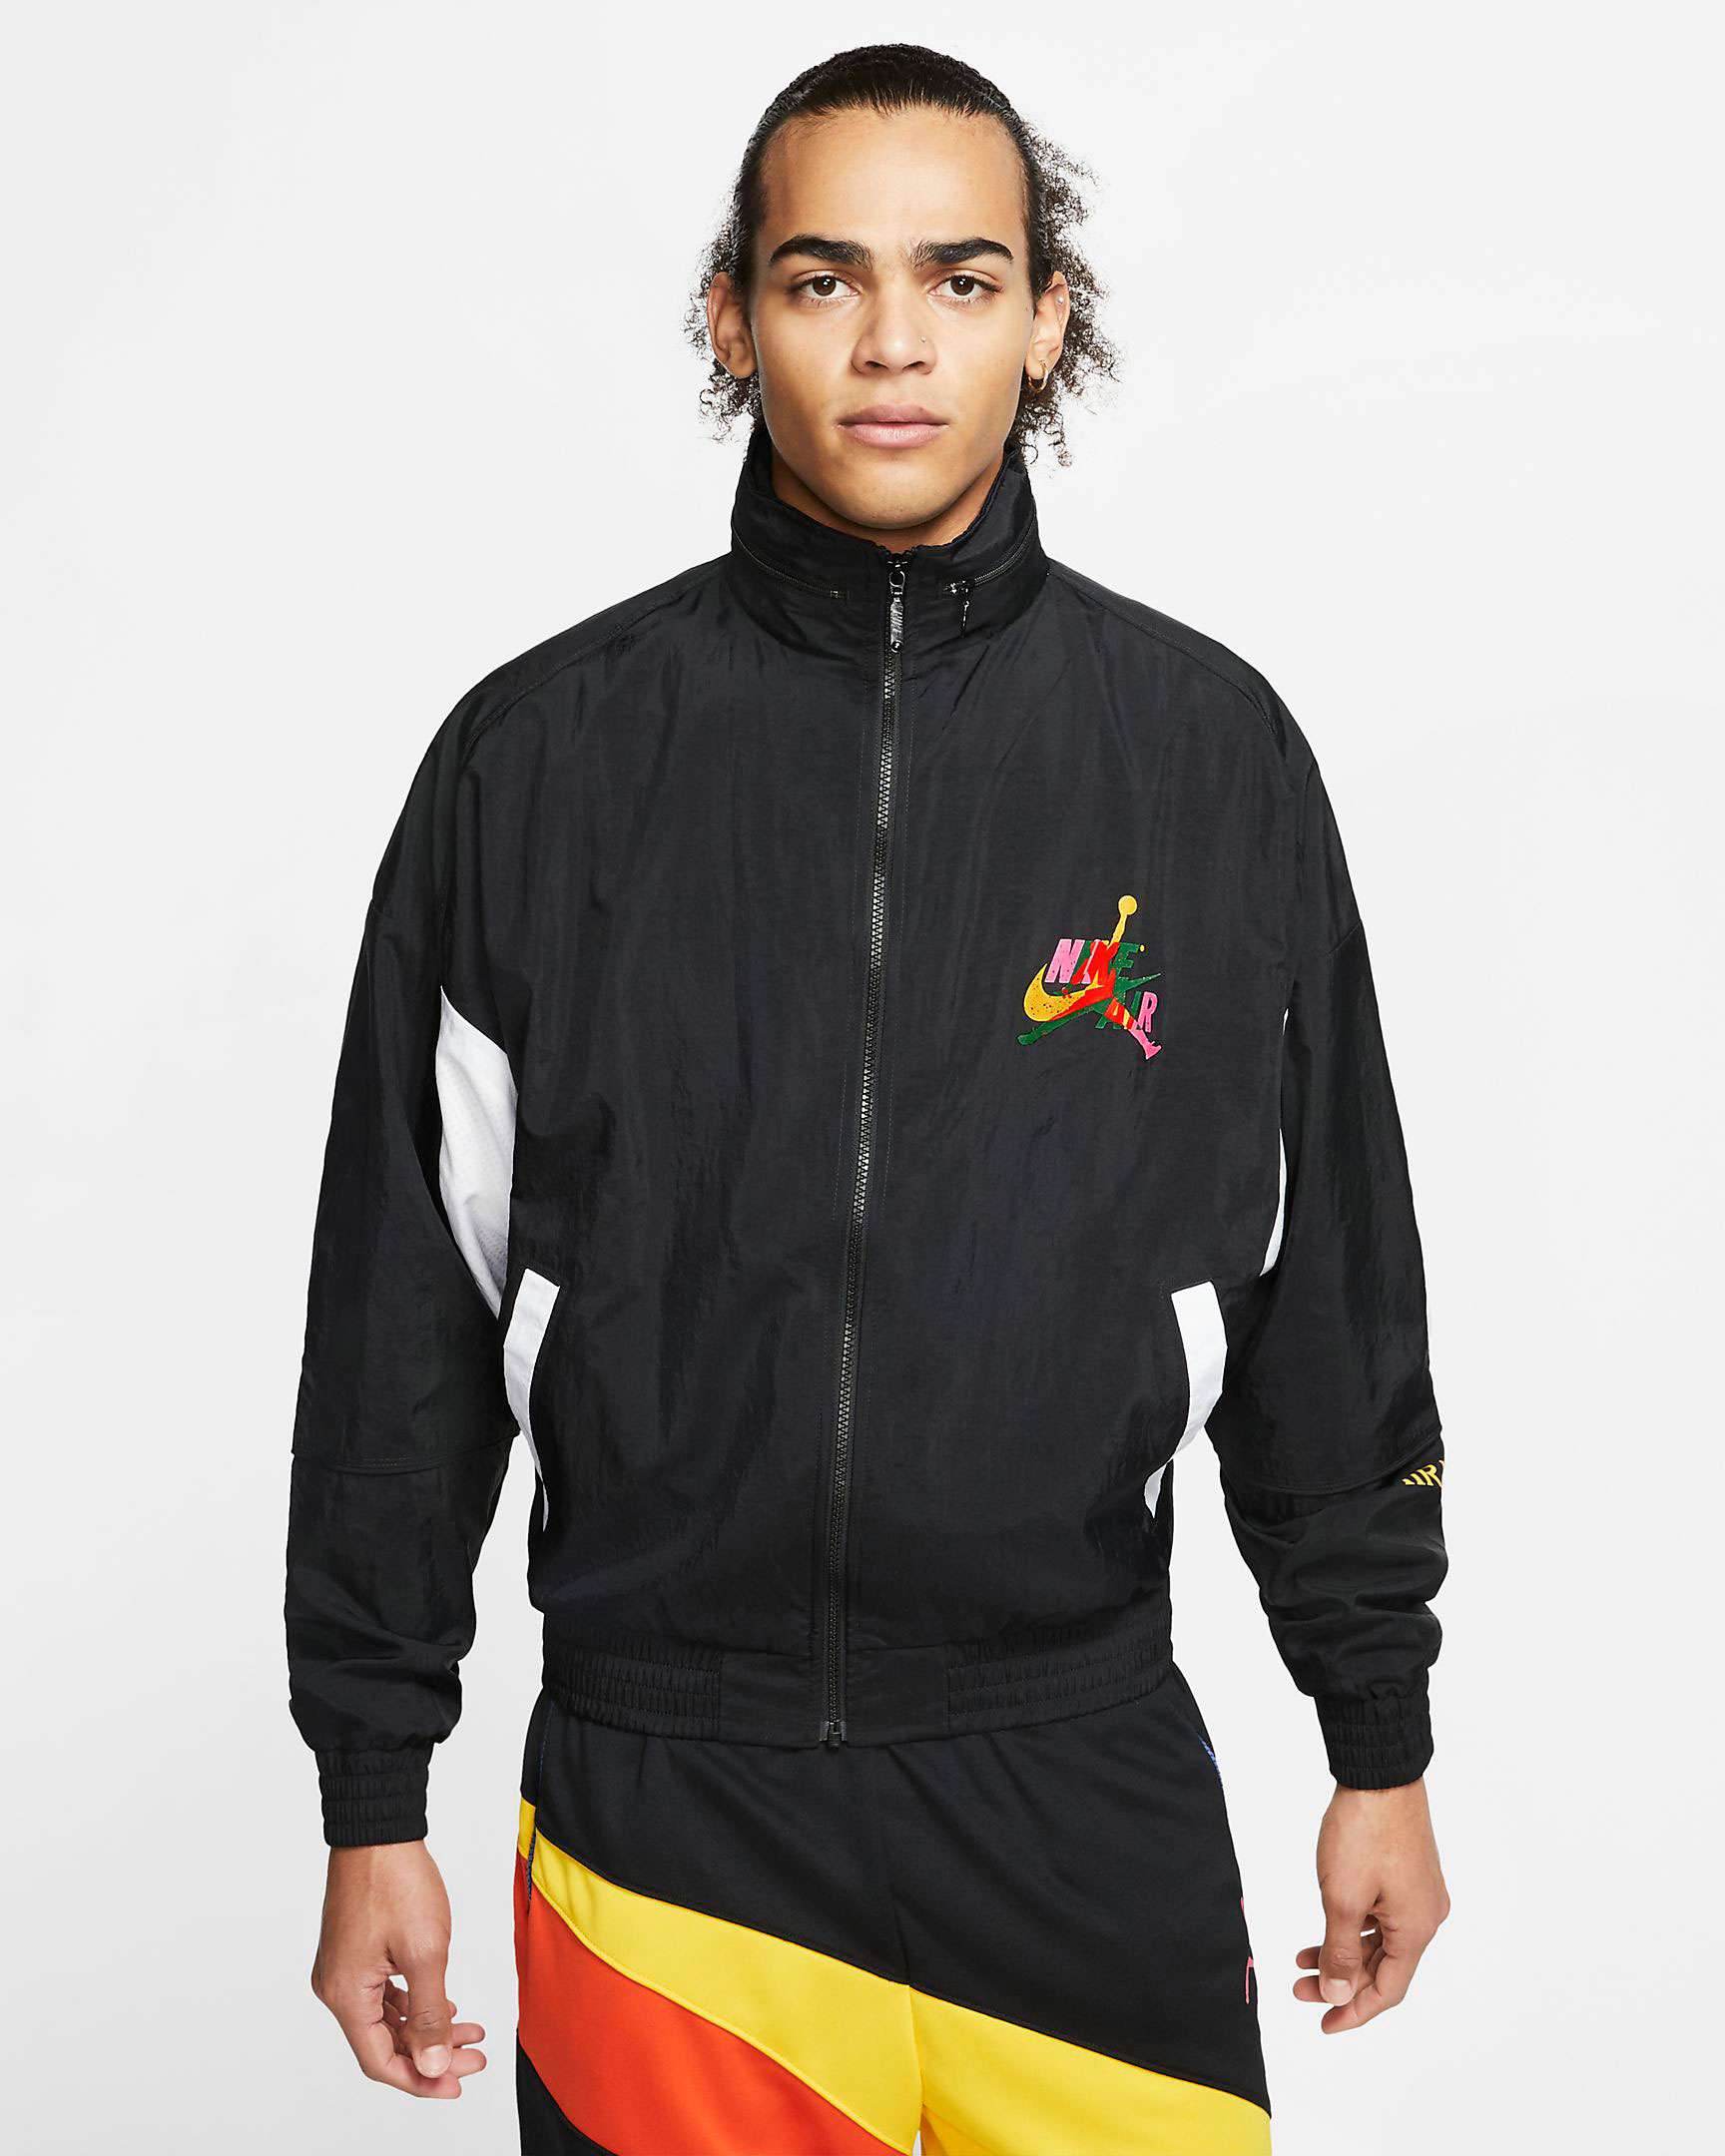 air-jordan-3-animal-instinct-2-jacket-1